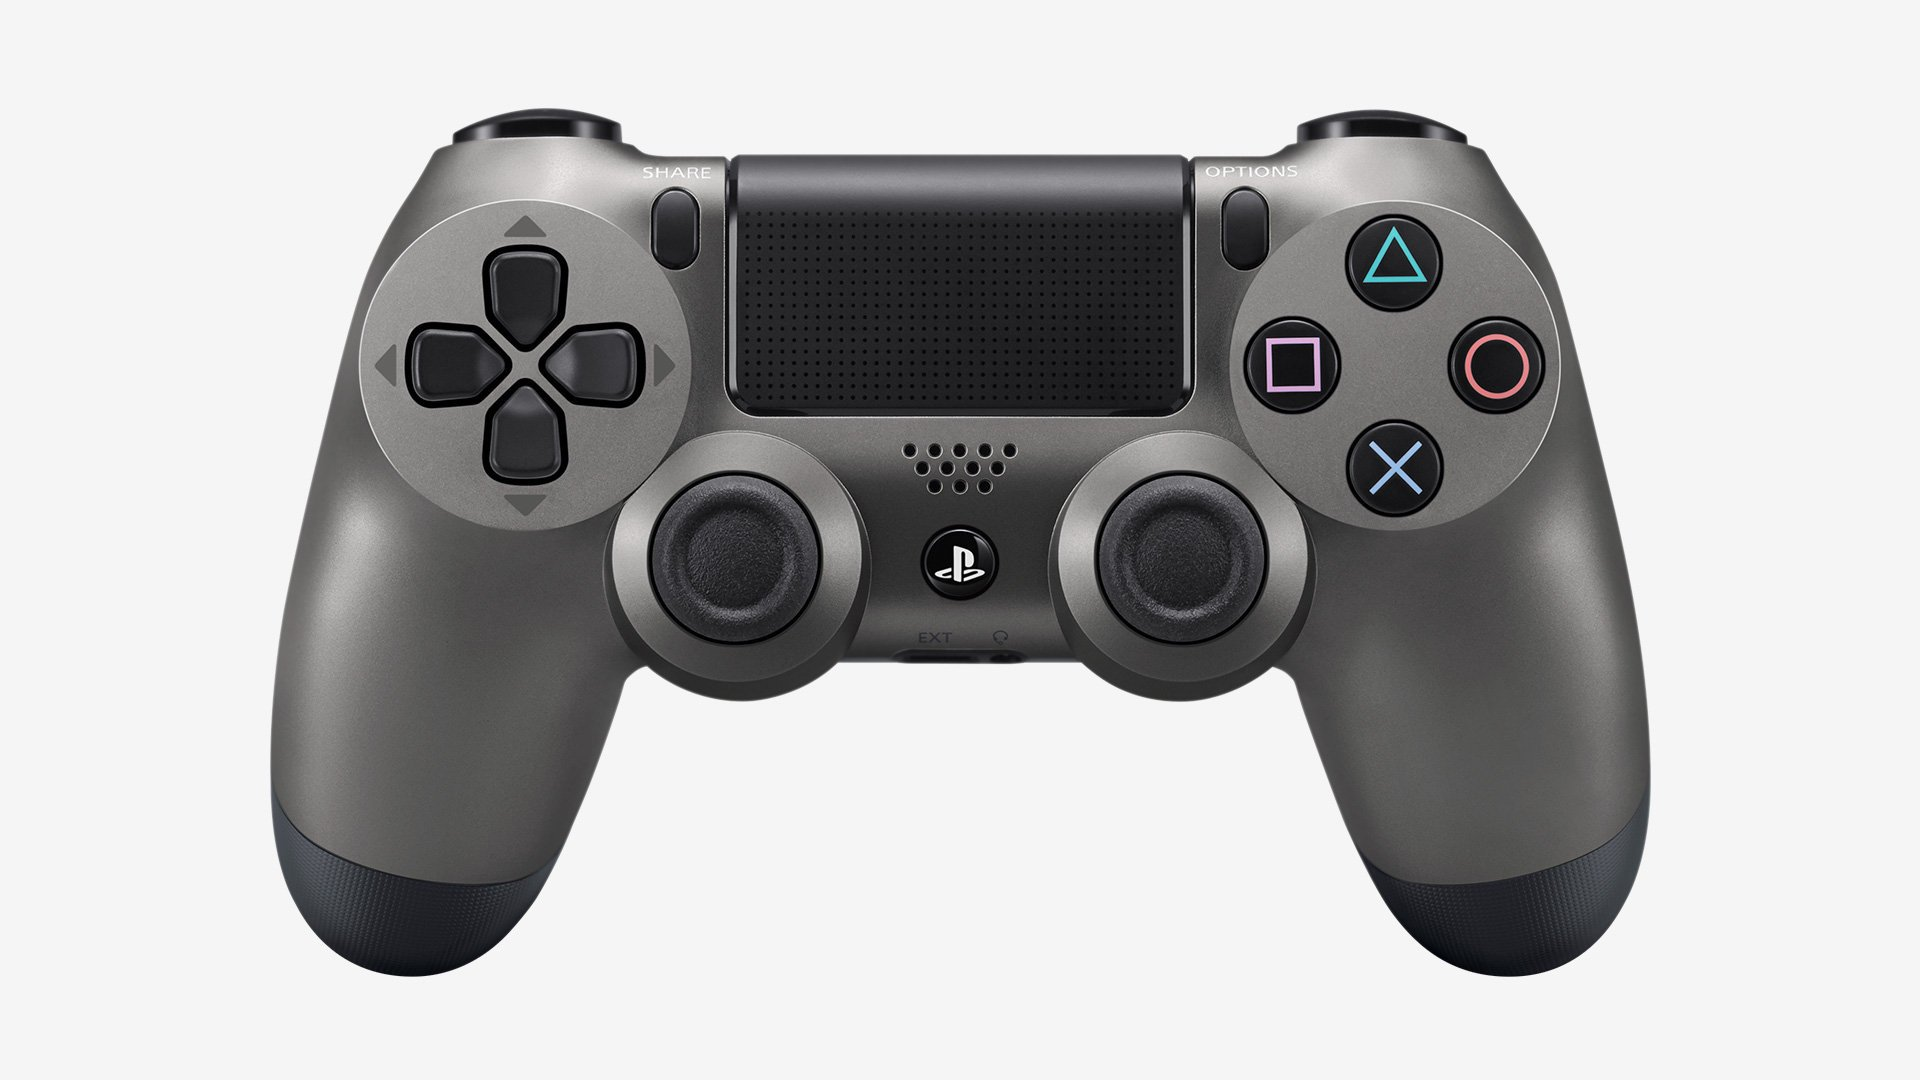 Standard DualShock controller will work with all PlayStation VR games